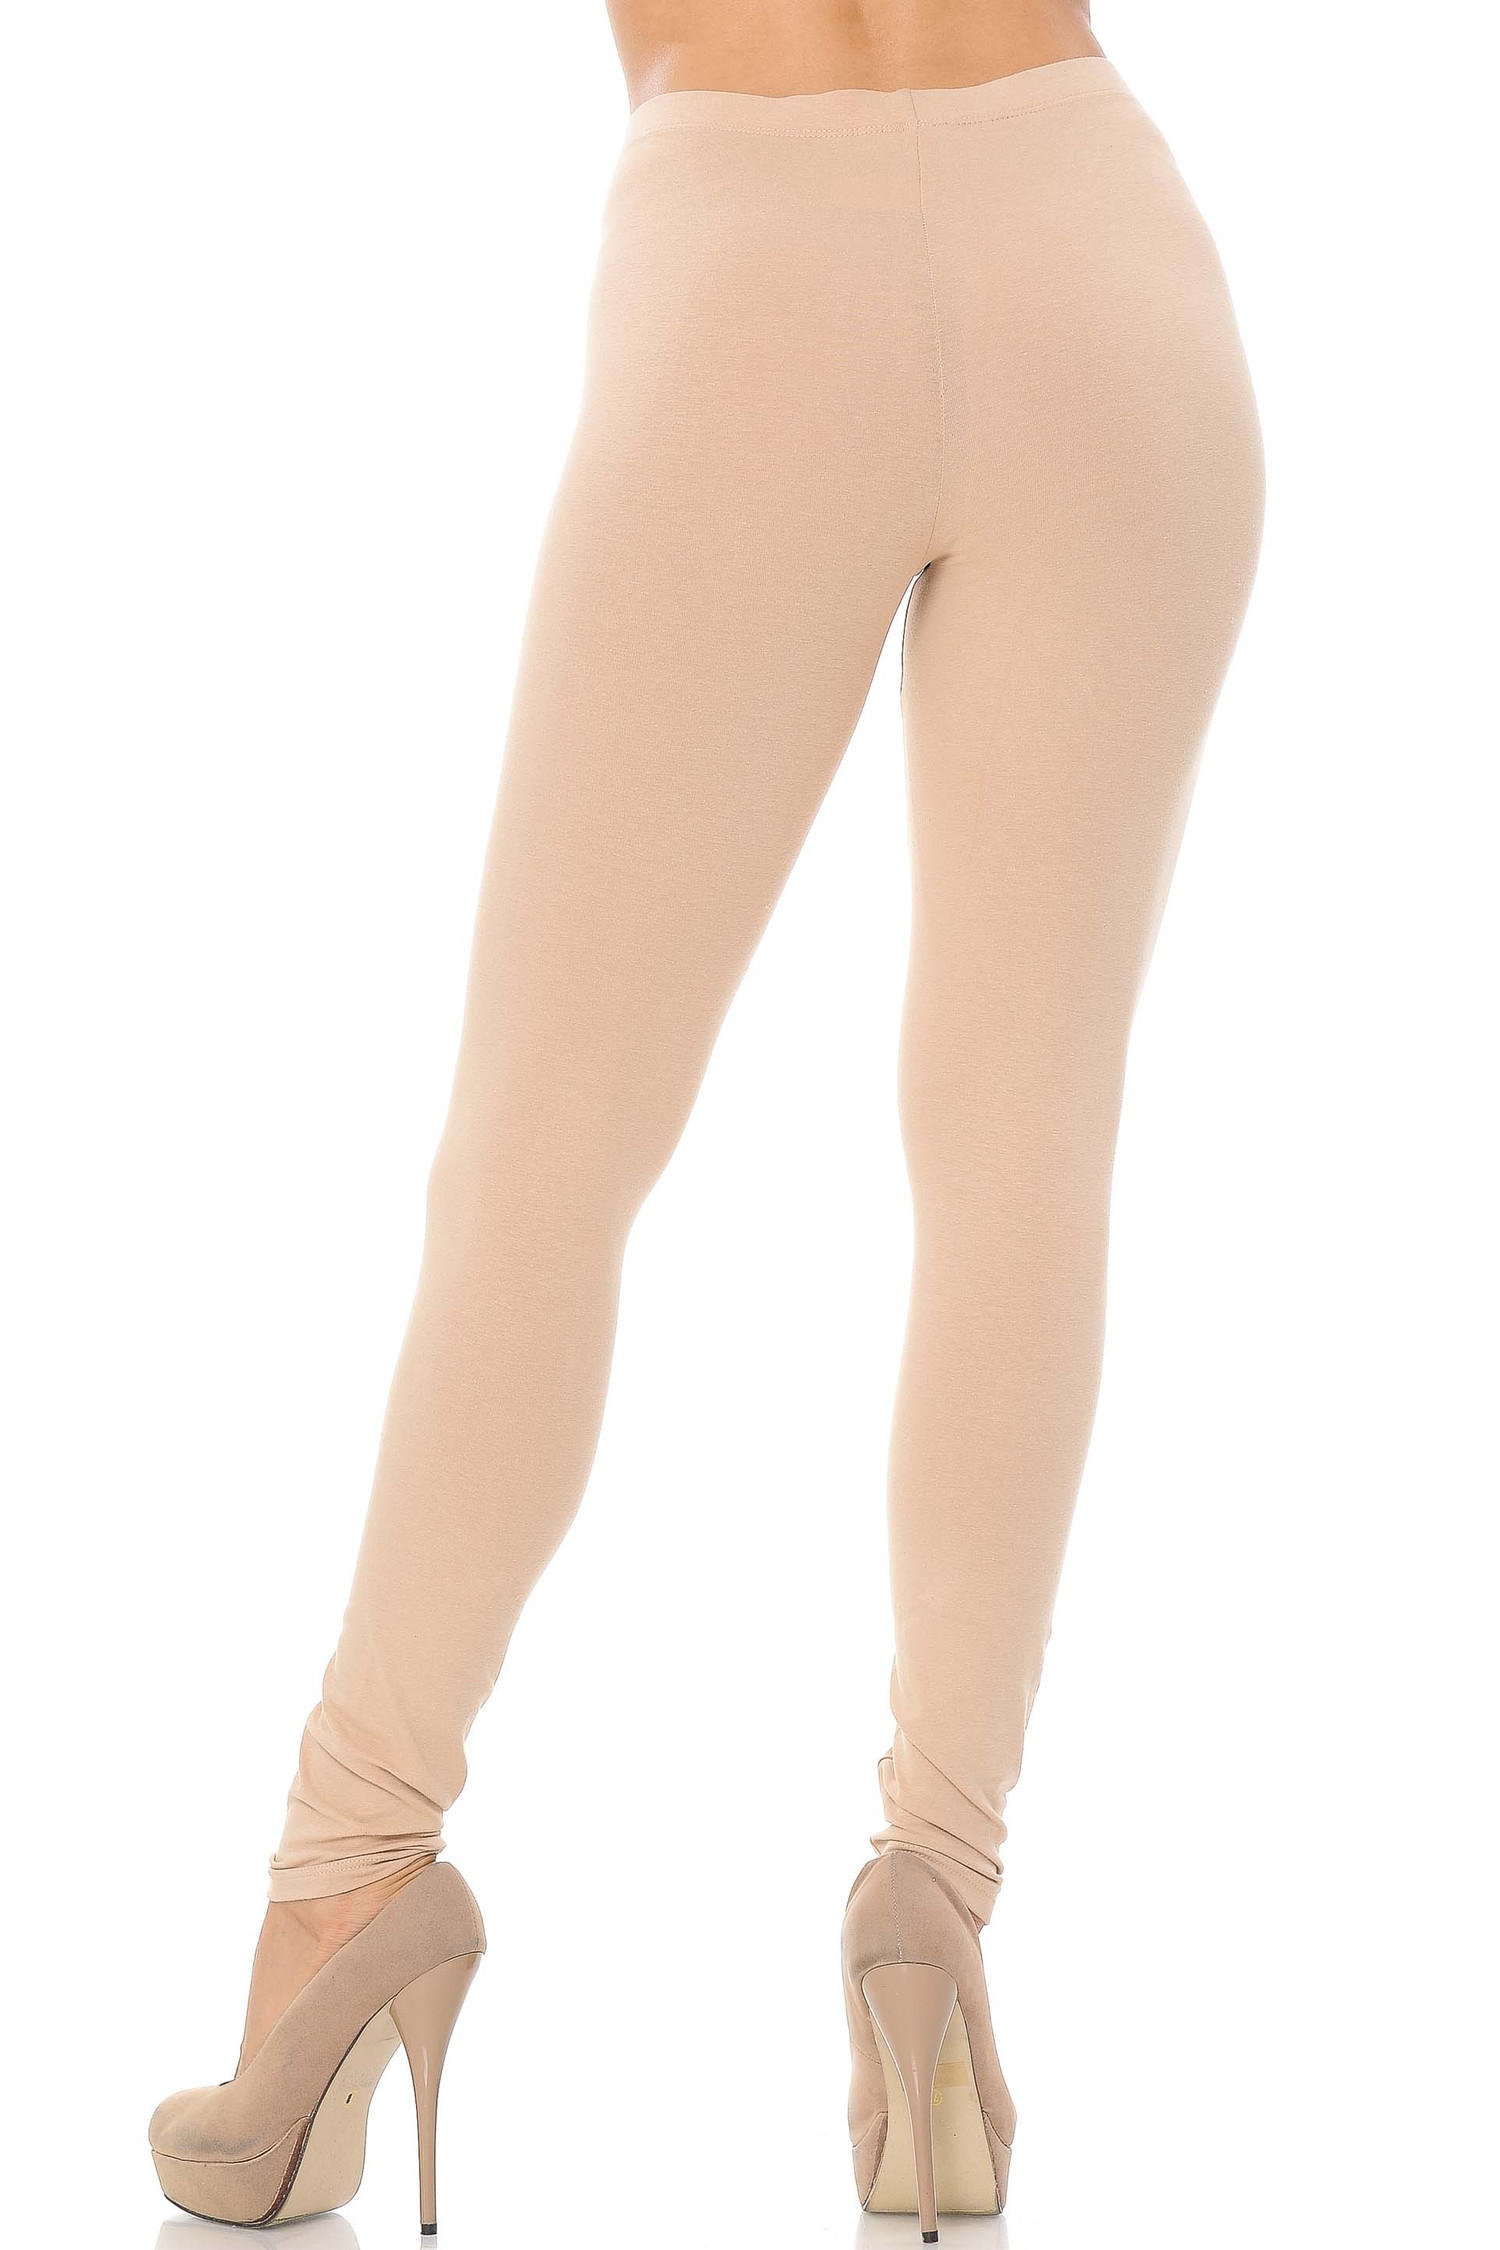 Rear view image of beige made in the USA cotton leggings showcasing a body hugging fit.